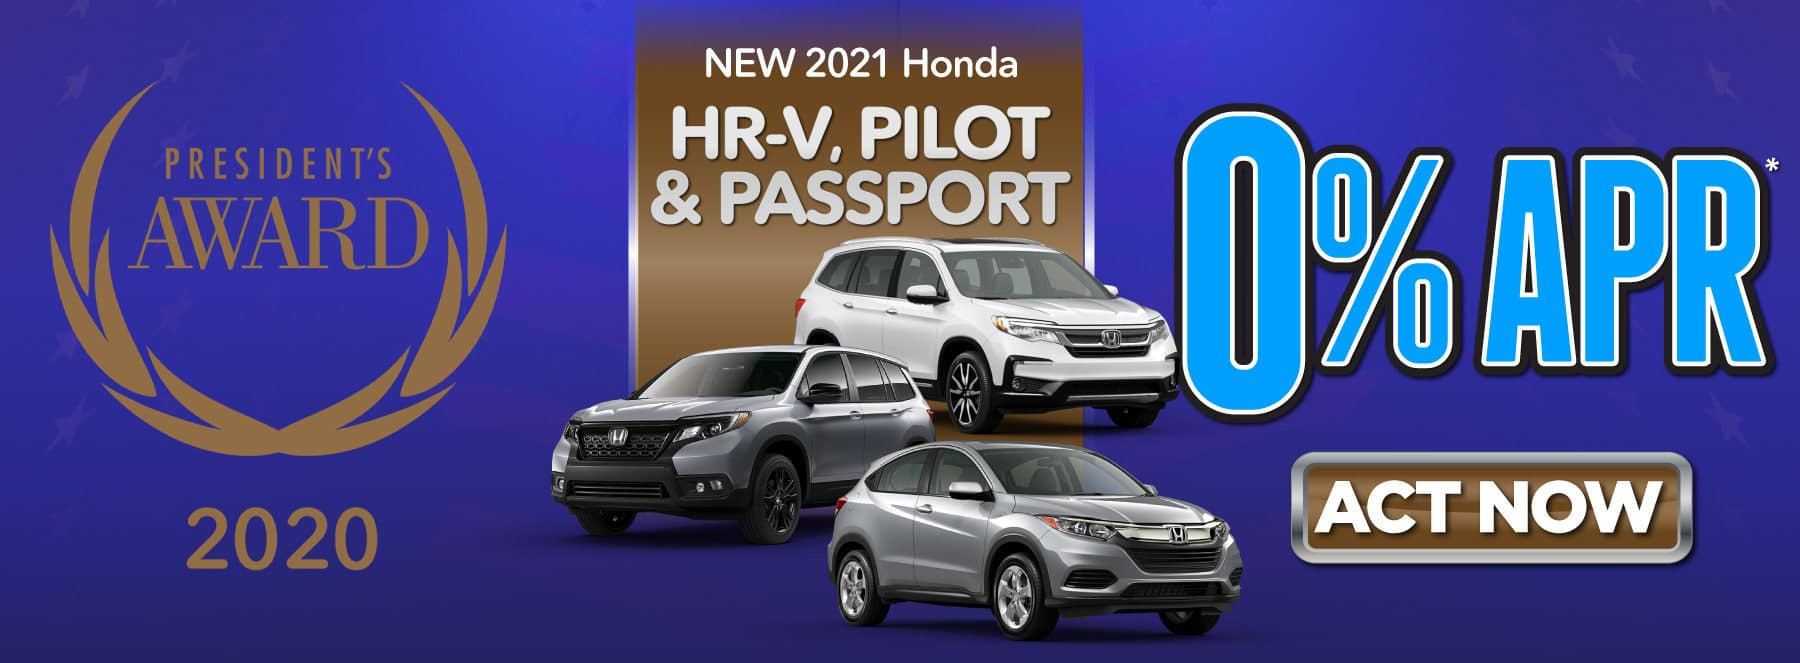 New 2021 Honda HR-V, Passport and Pilot - As low as 0% APR Available - Shop Now